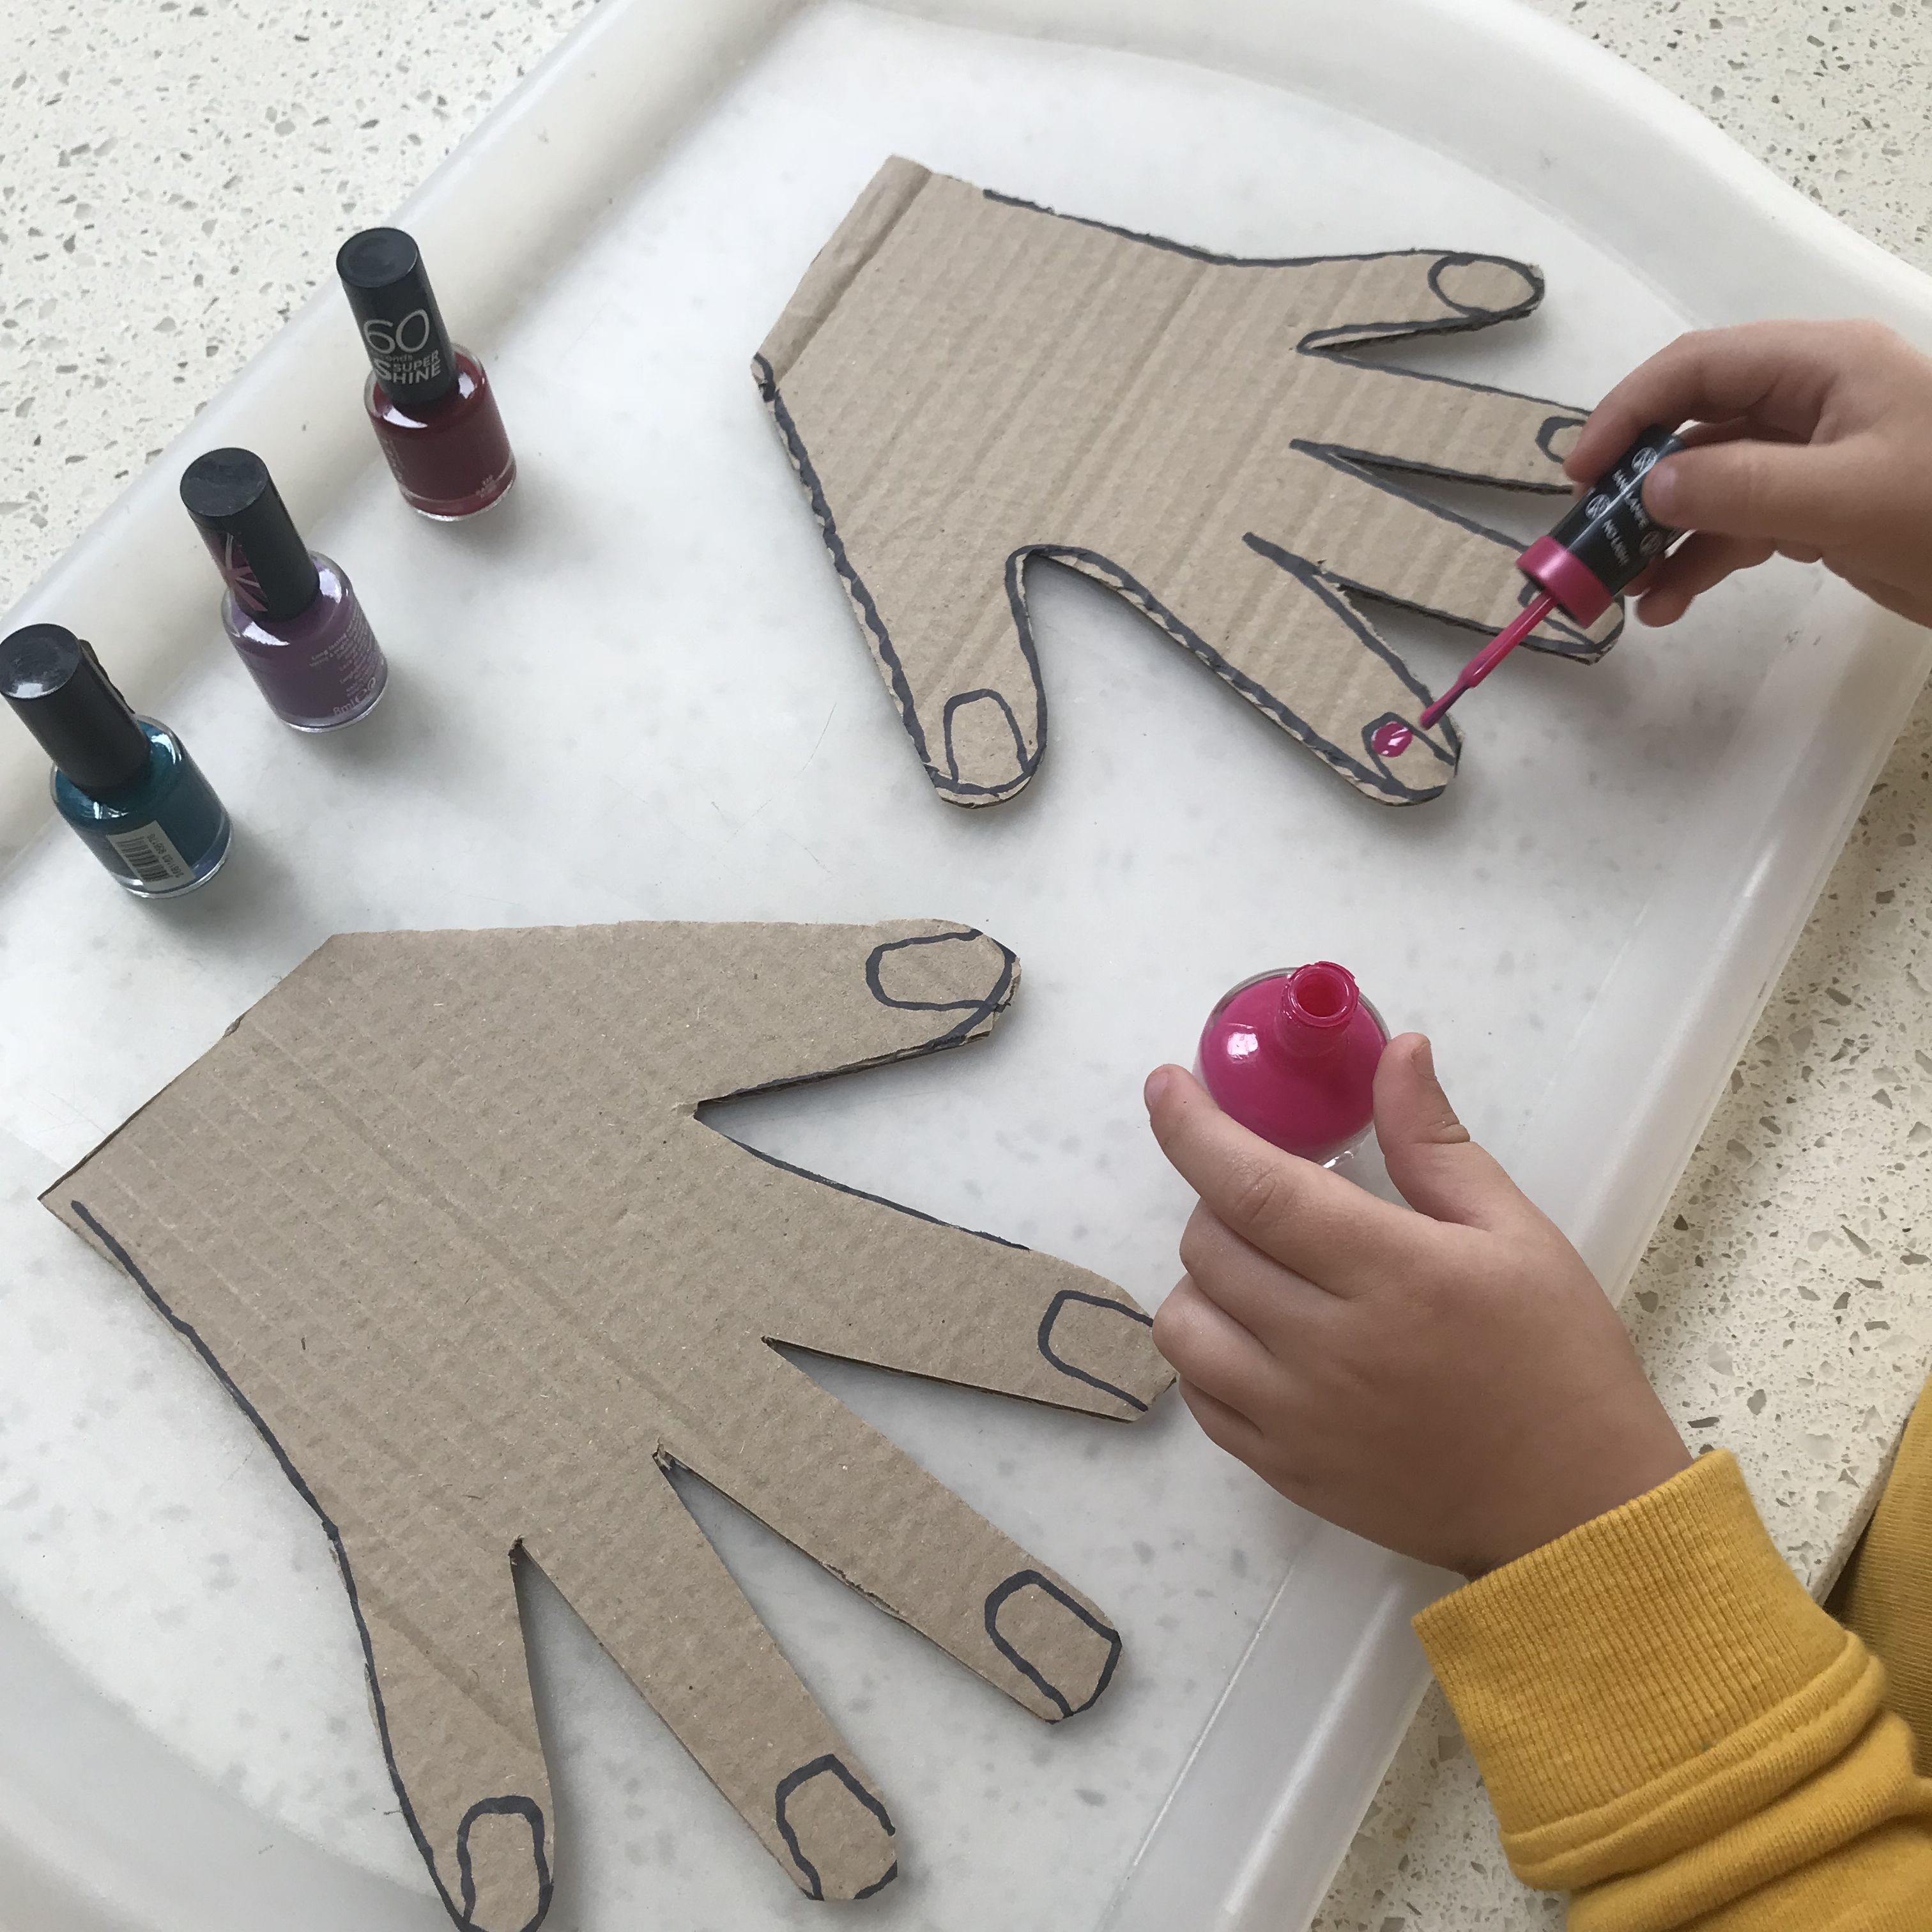 Nail painting into cardboard cut out hands! Great for hand eye coordination, pretend play and creative development